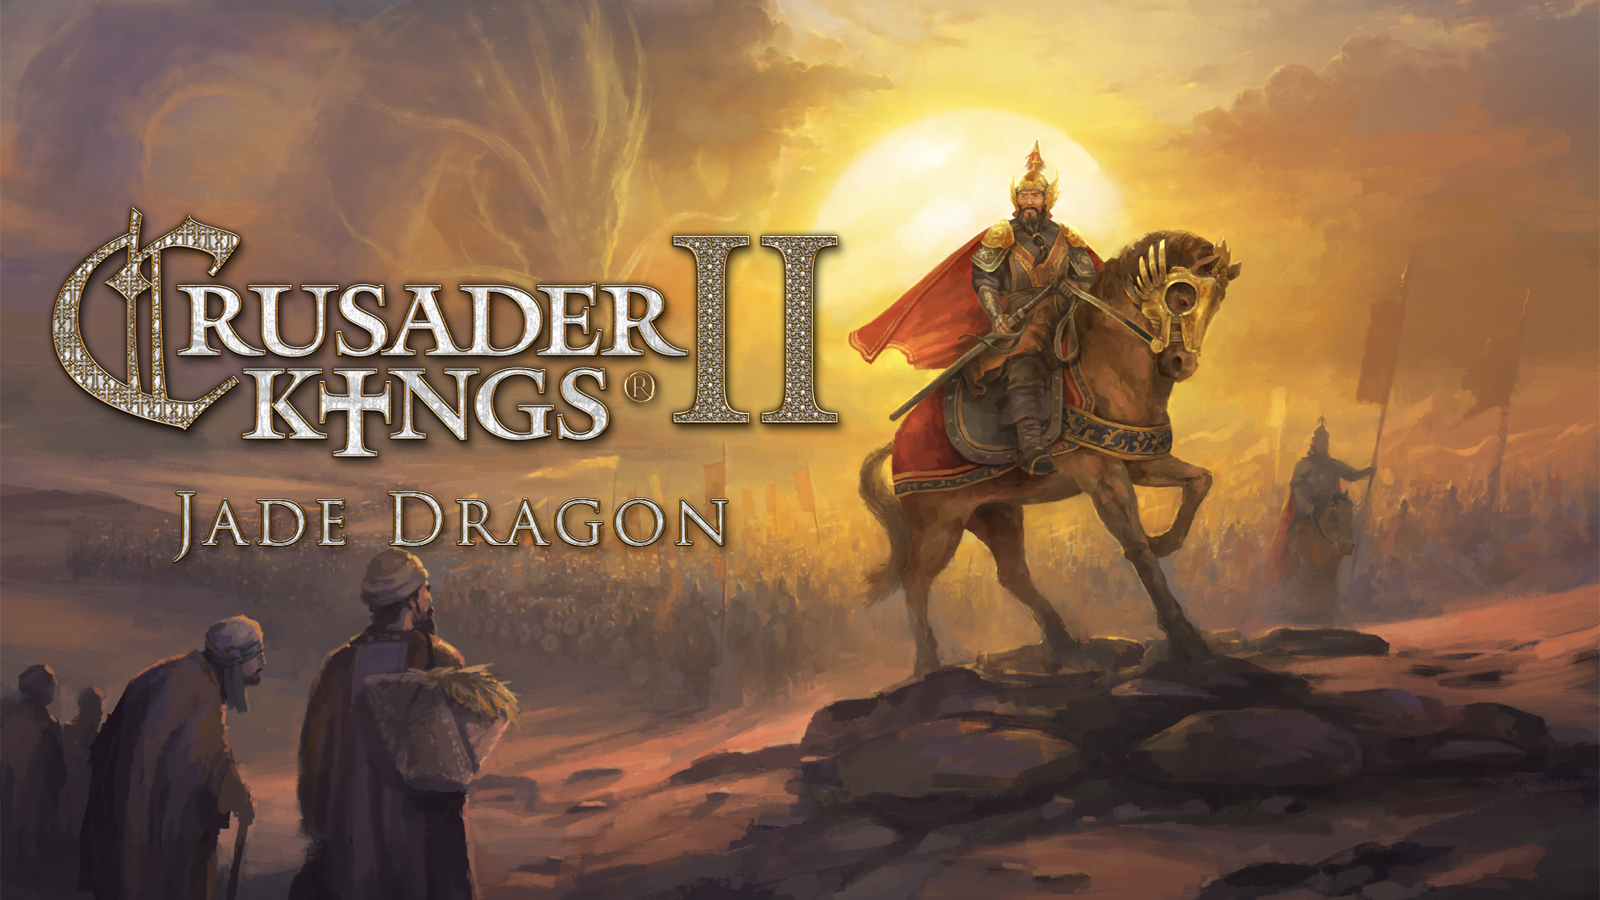 Crusader Kings 2 heads to China with new expansion Jade